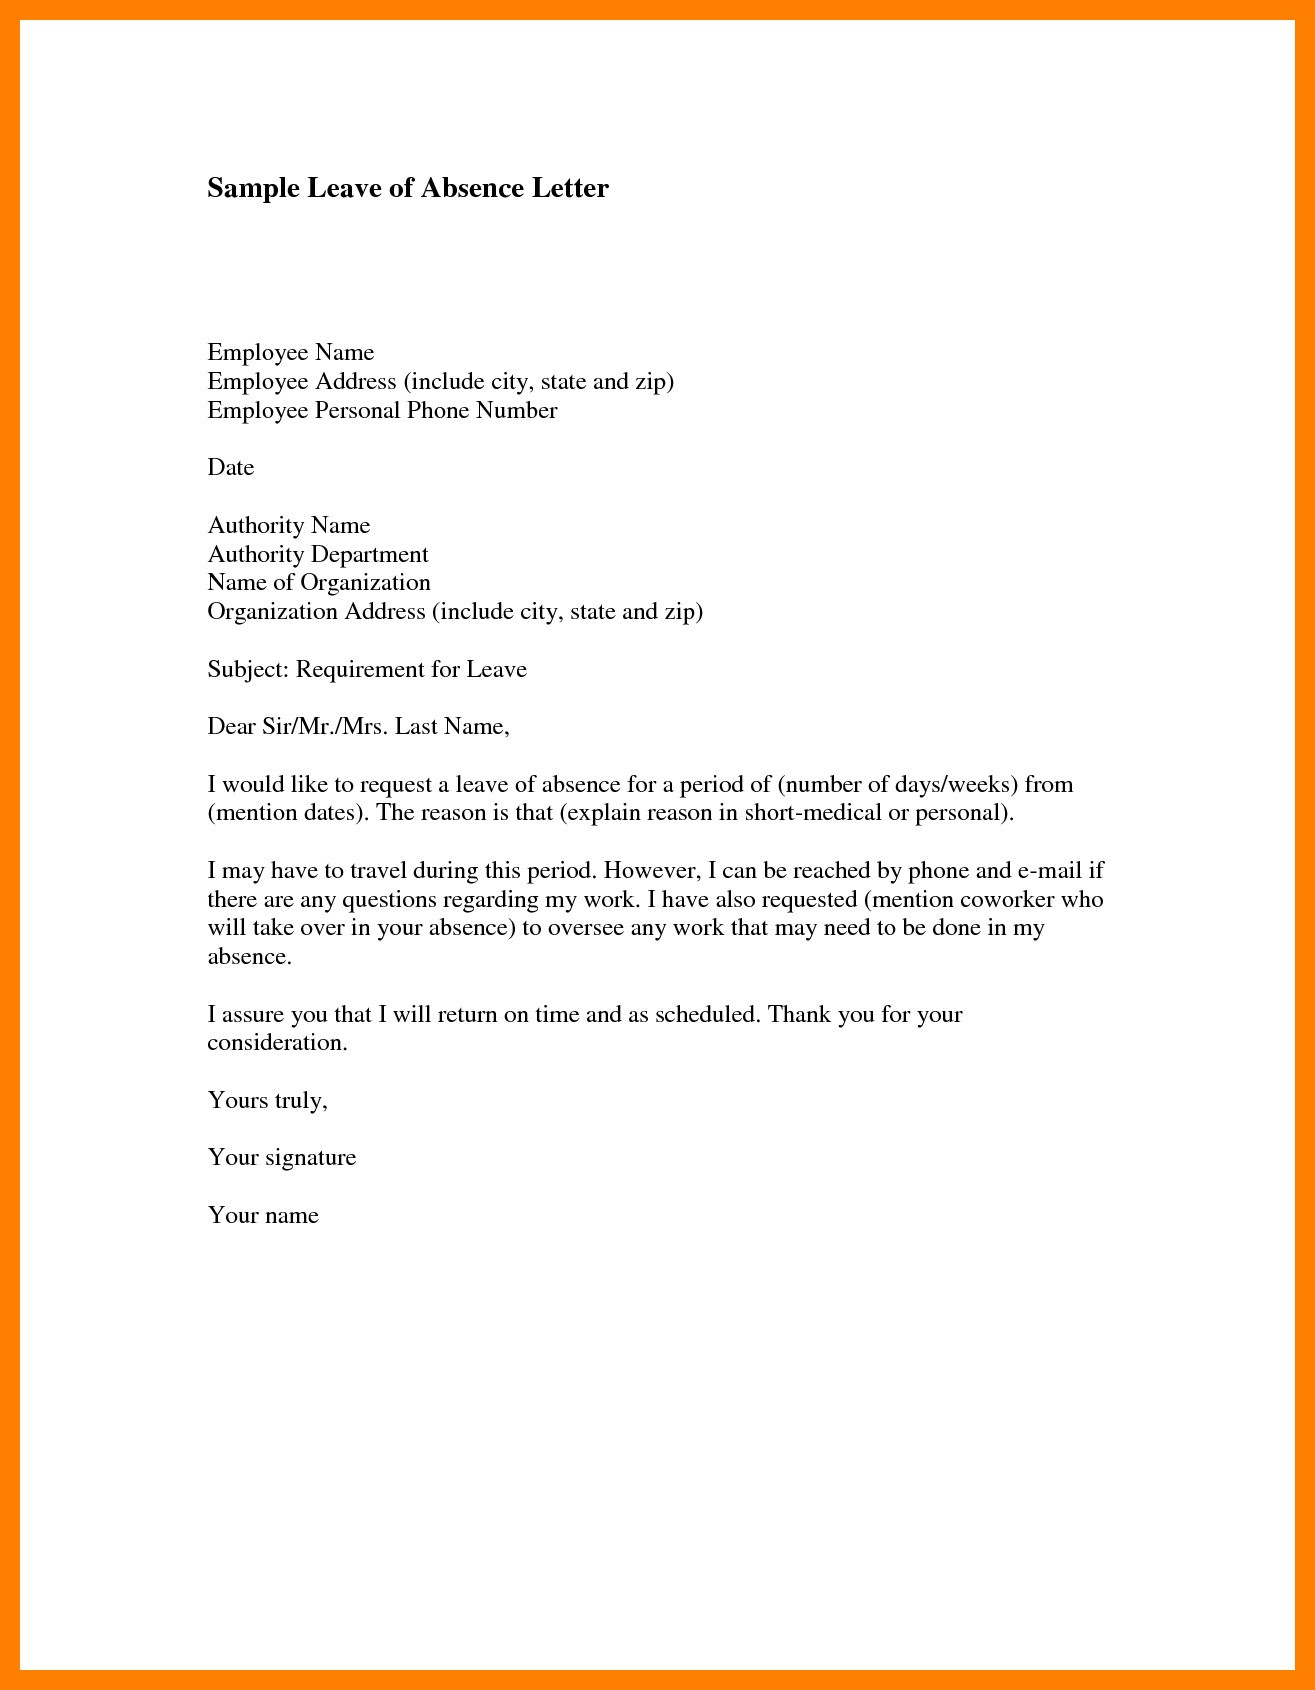 Medical leave of absence letter template examples letter templates medical leave of absence letter template leave letter format for employee new sample leave absence thecheapjerseys Image collections